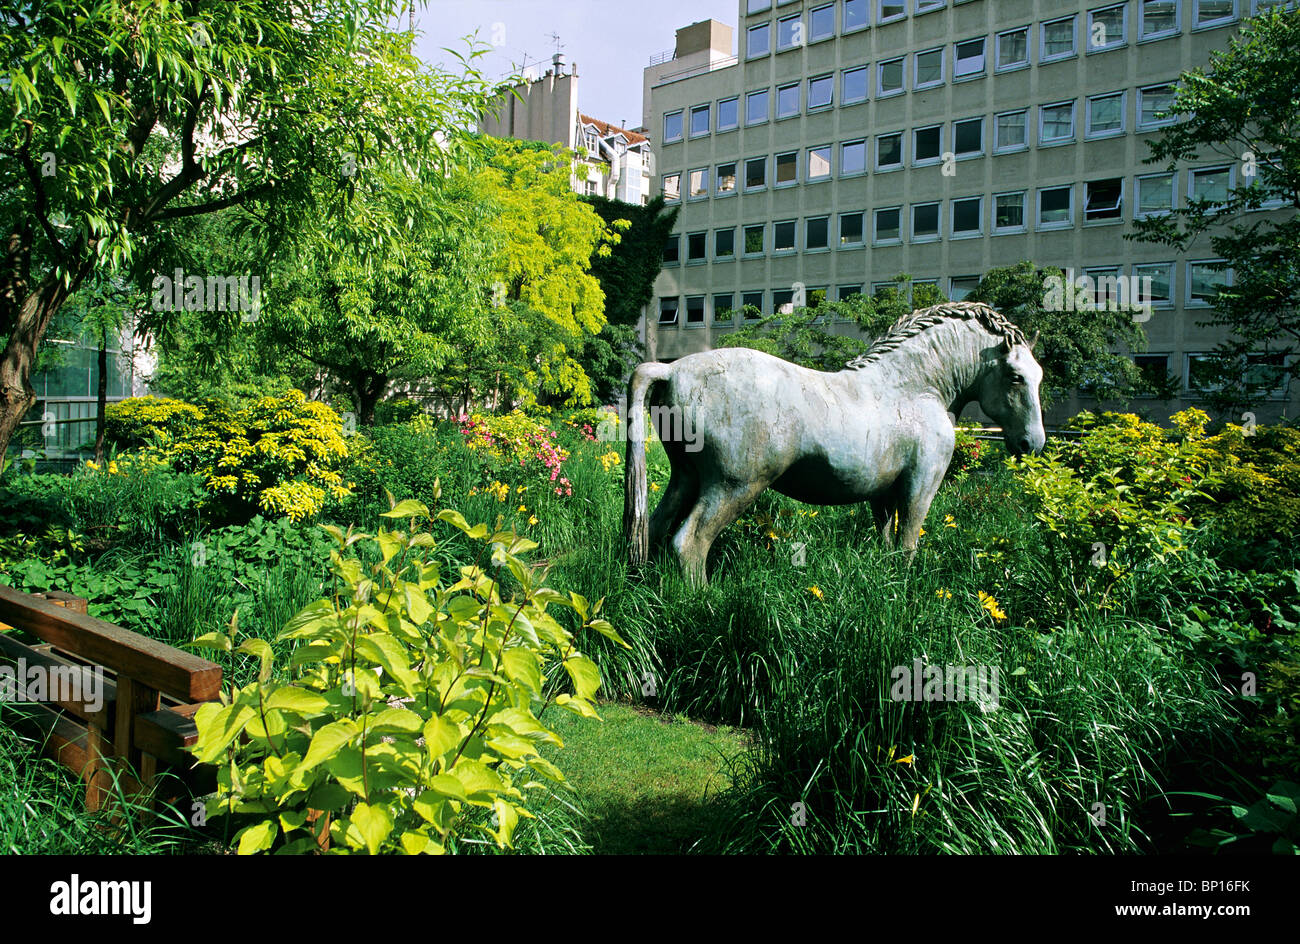 France, Paris, garden of AXA company - Stock Image